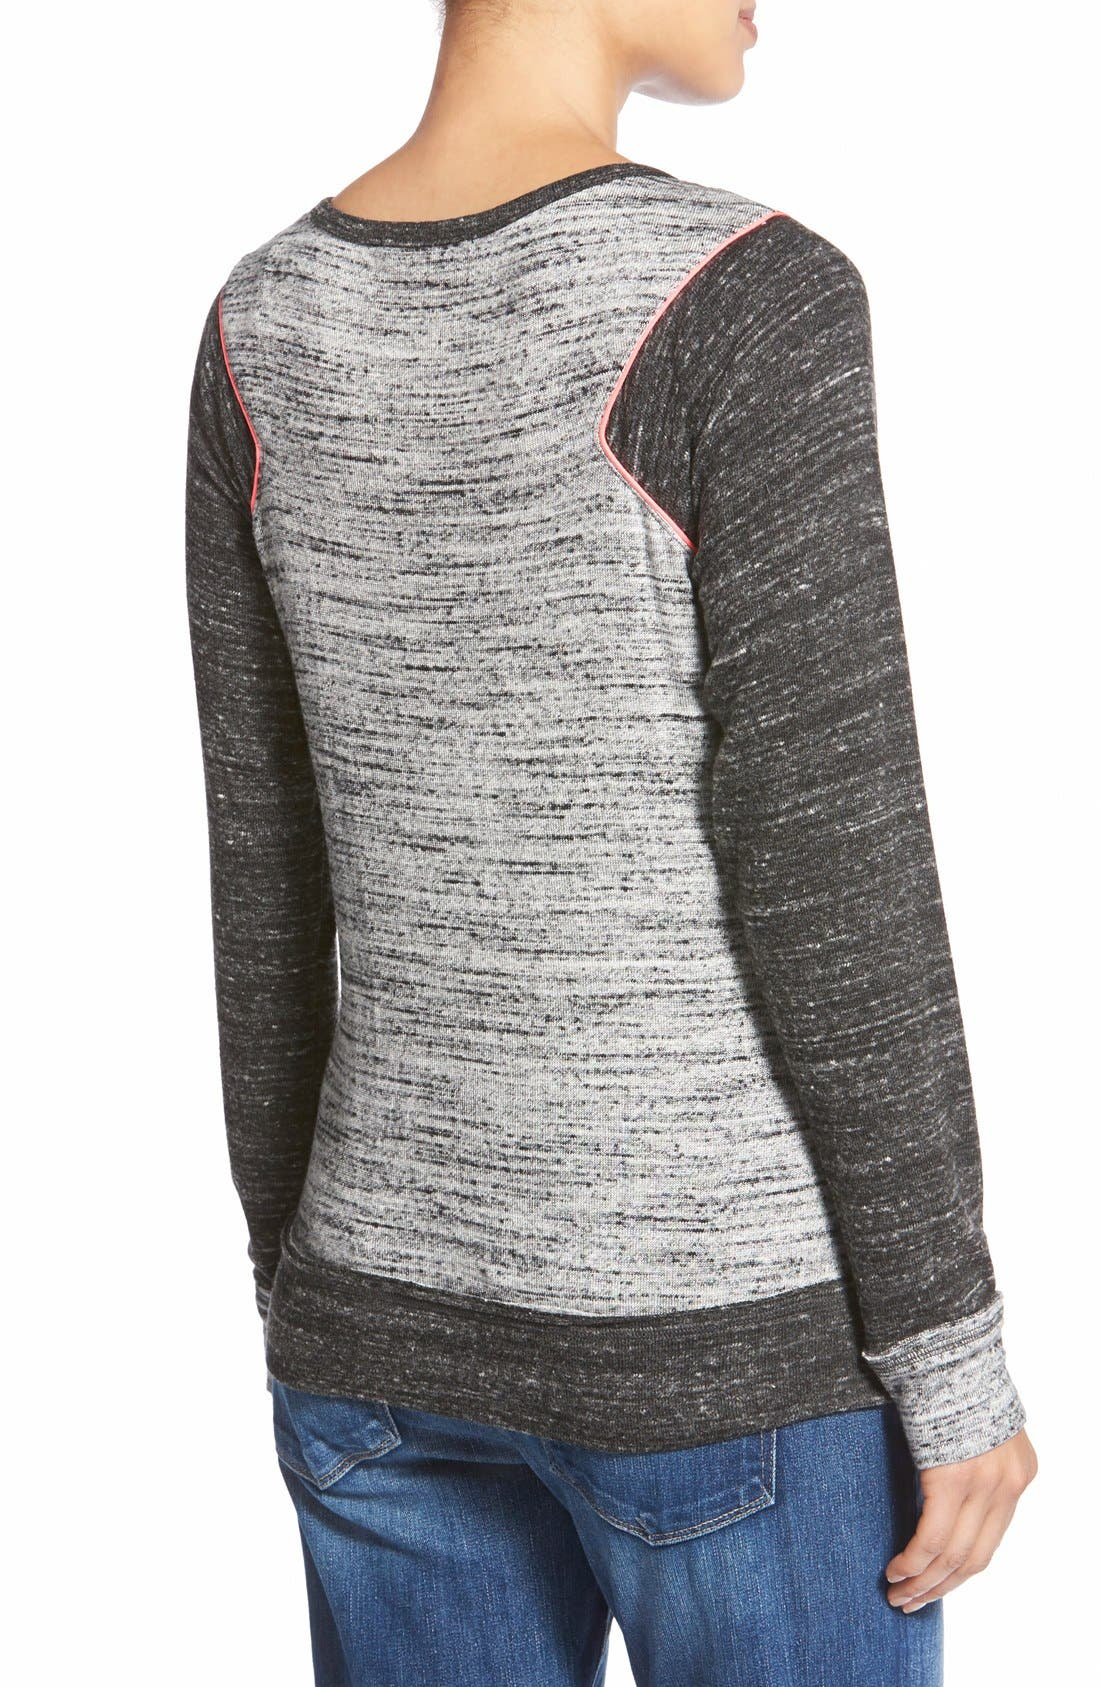 'Raelani' Stretch Jersey Maternity Top,                             Alternate thumbnail 2, color,                             Heather/ Charcoal